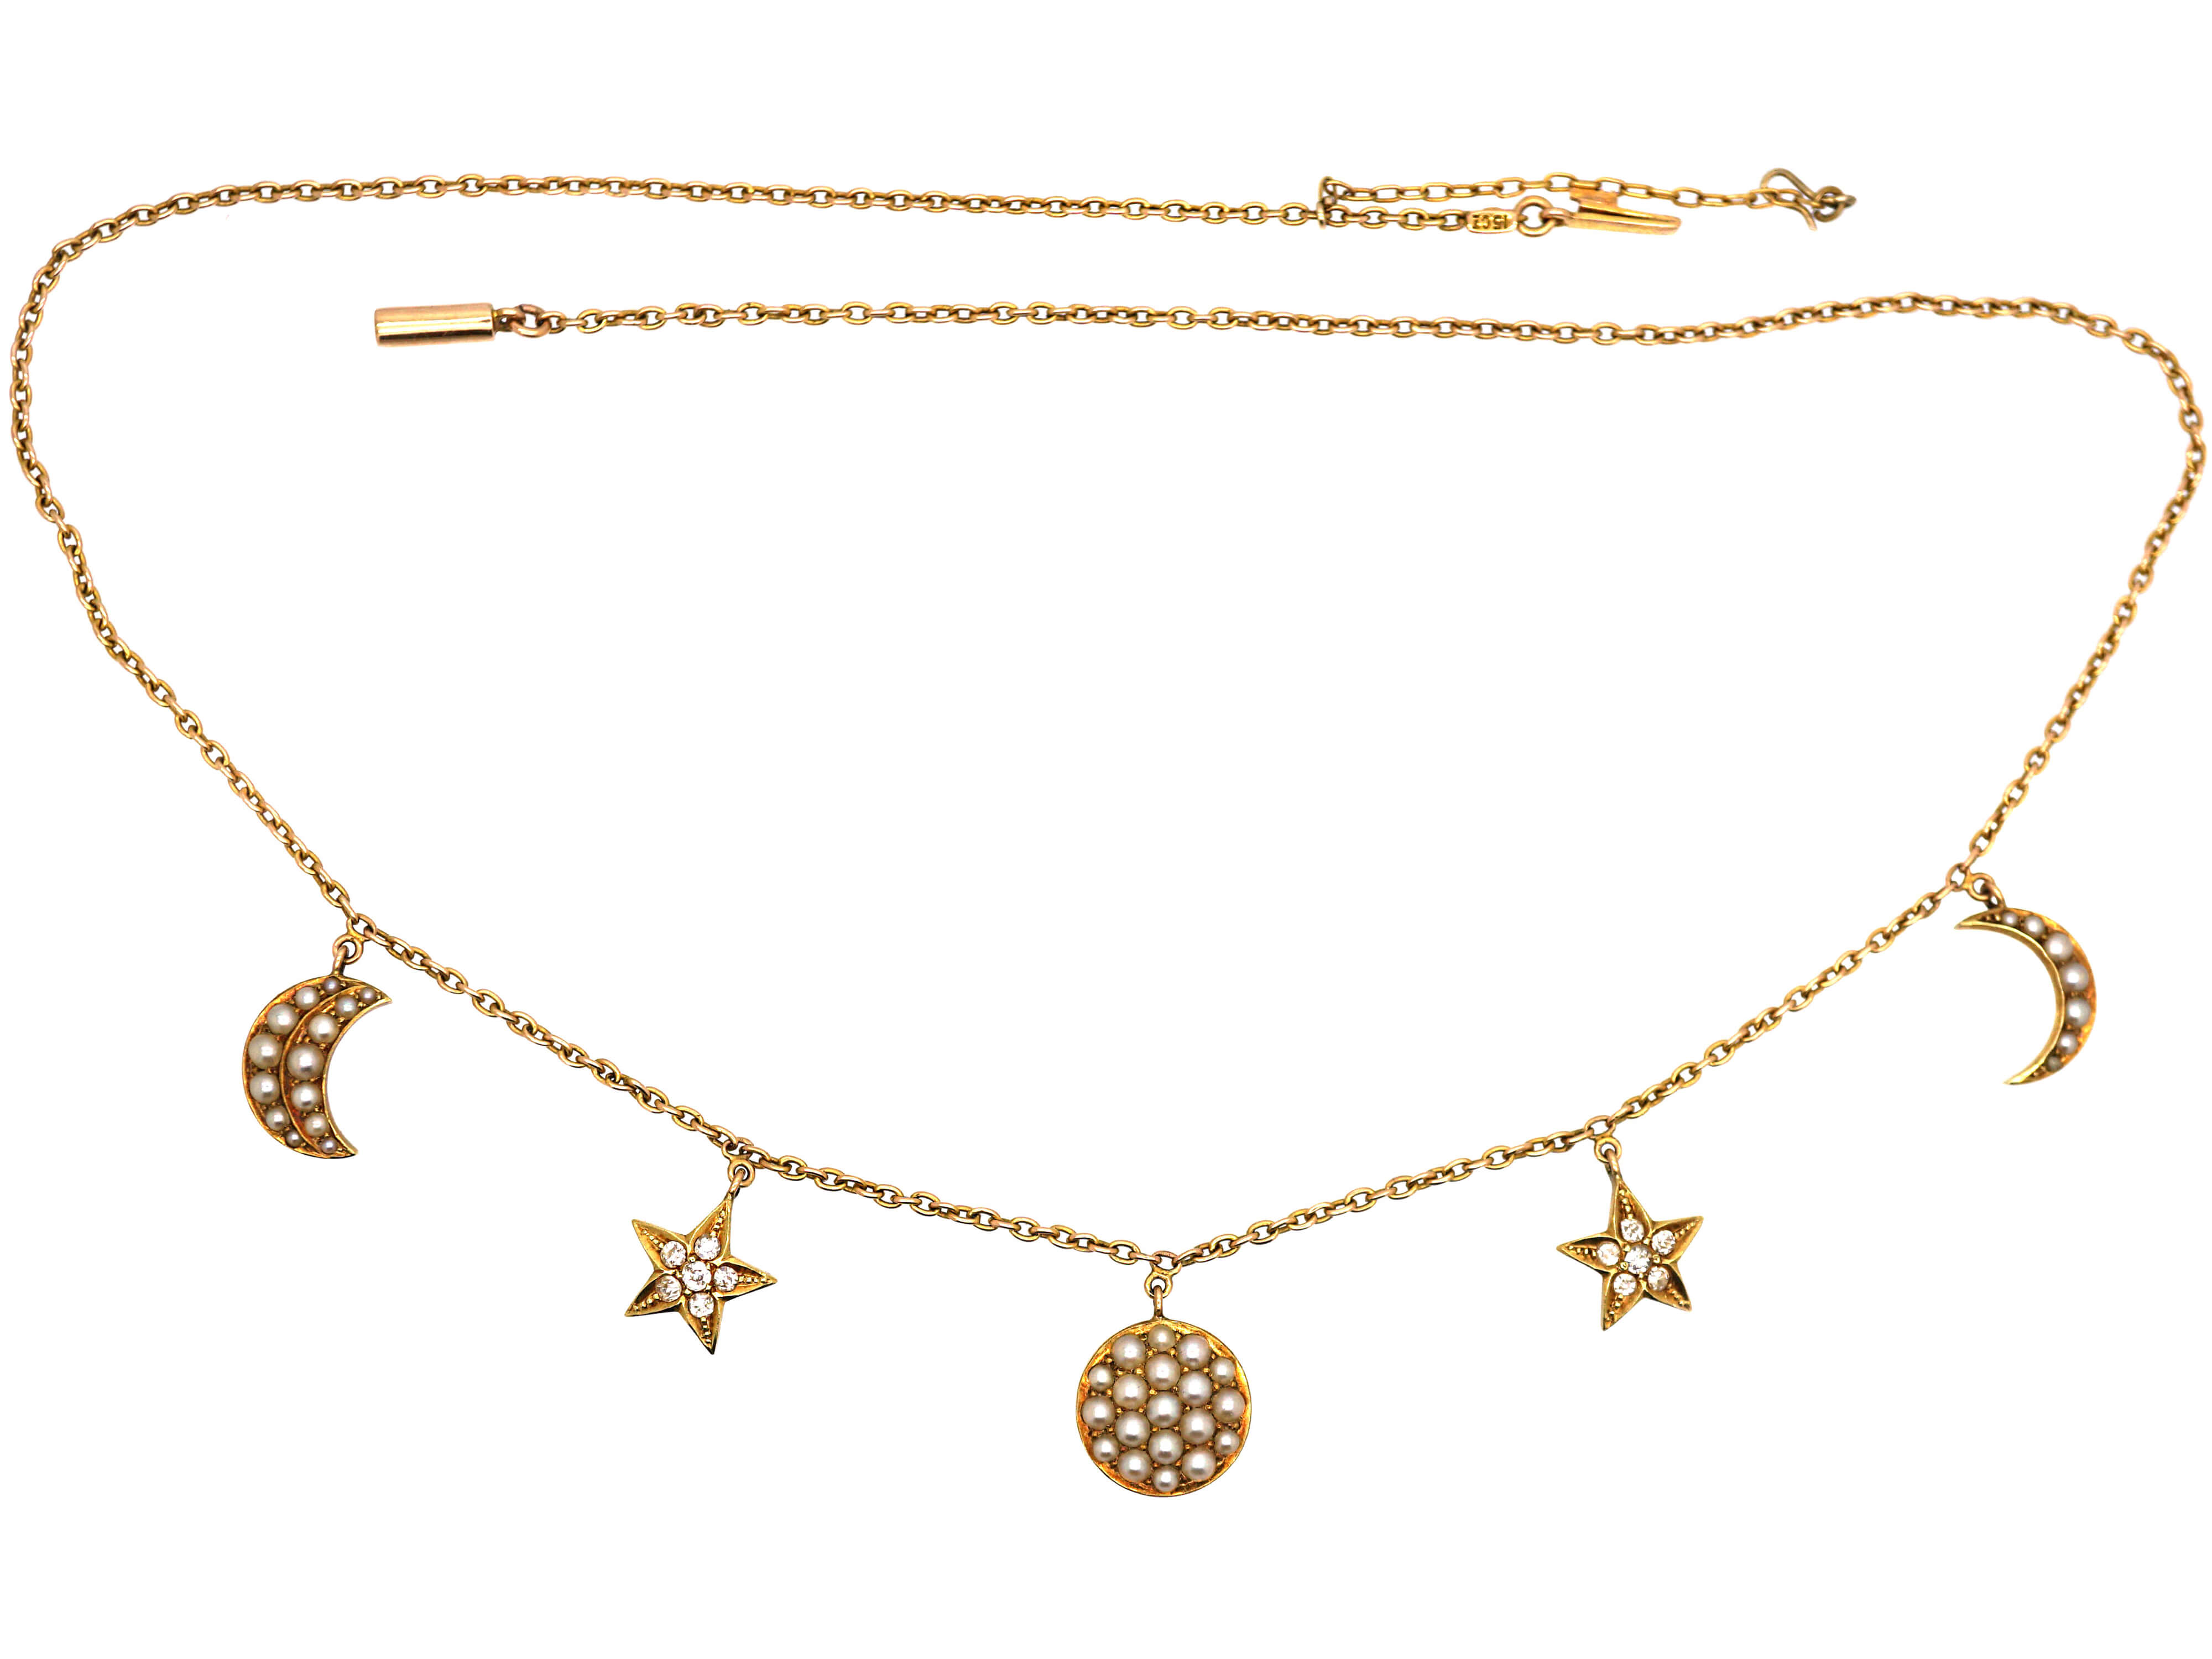 Edwardian 15ct Gold Moon & Crescent Necklace set with Natural Split Pearls